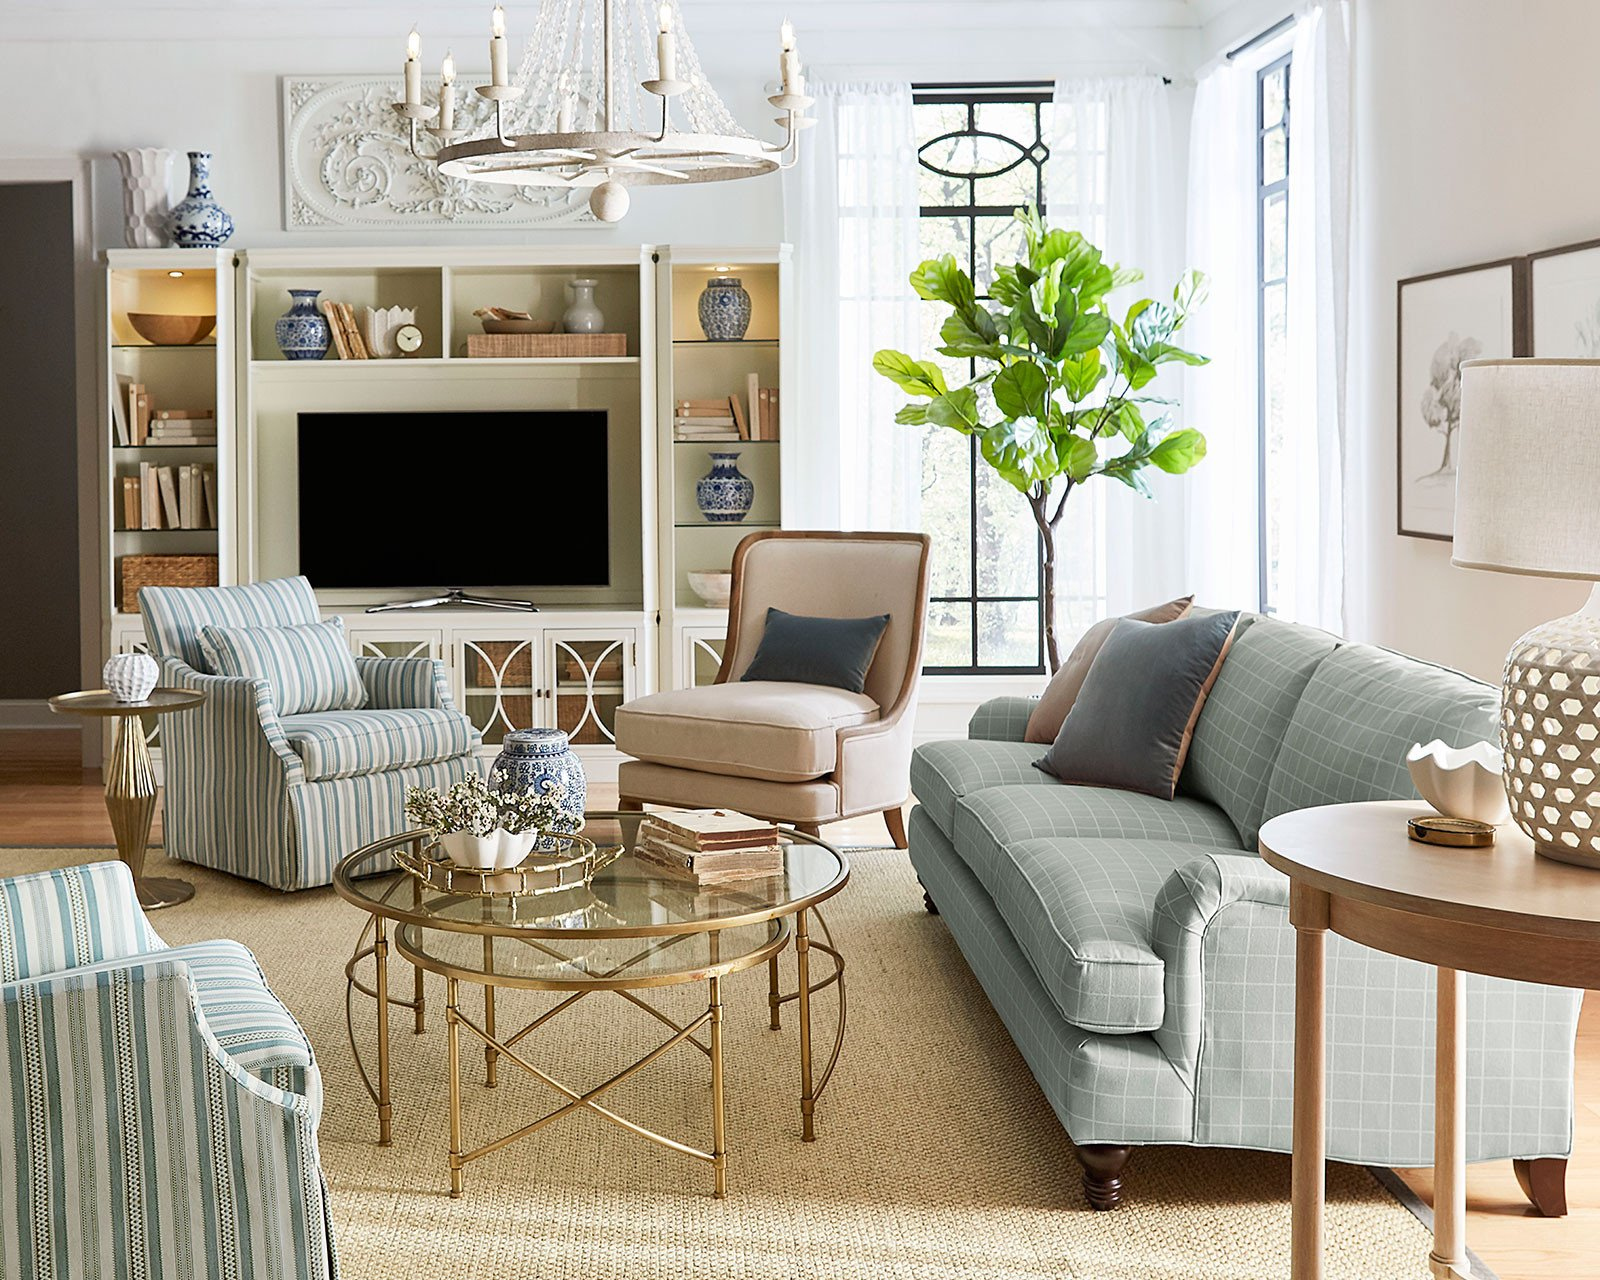 Small Living Room Seating Ideas Small Living Room Ideas for More Seating and Style